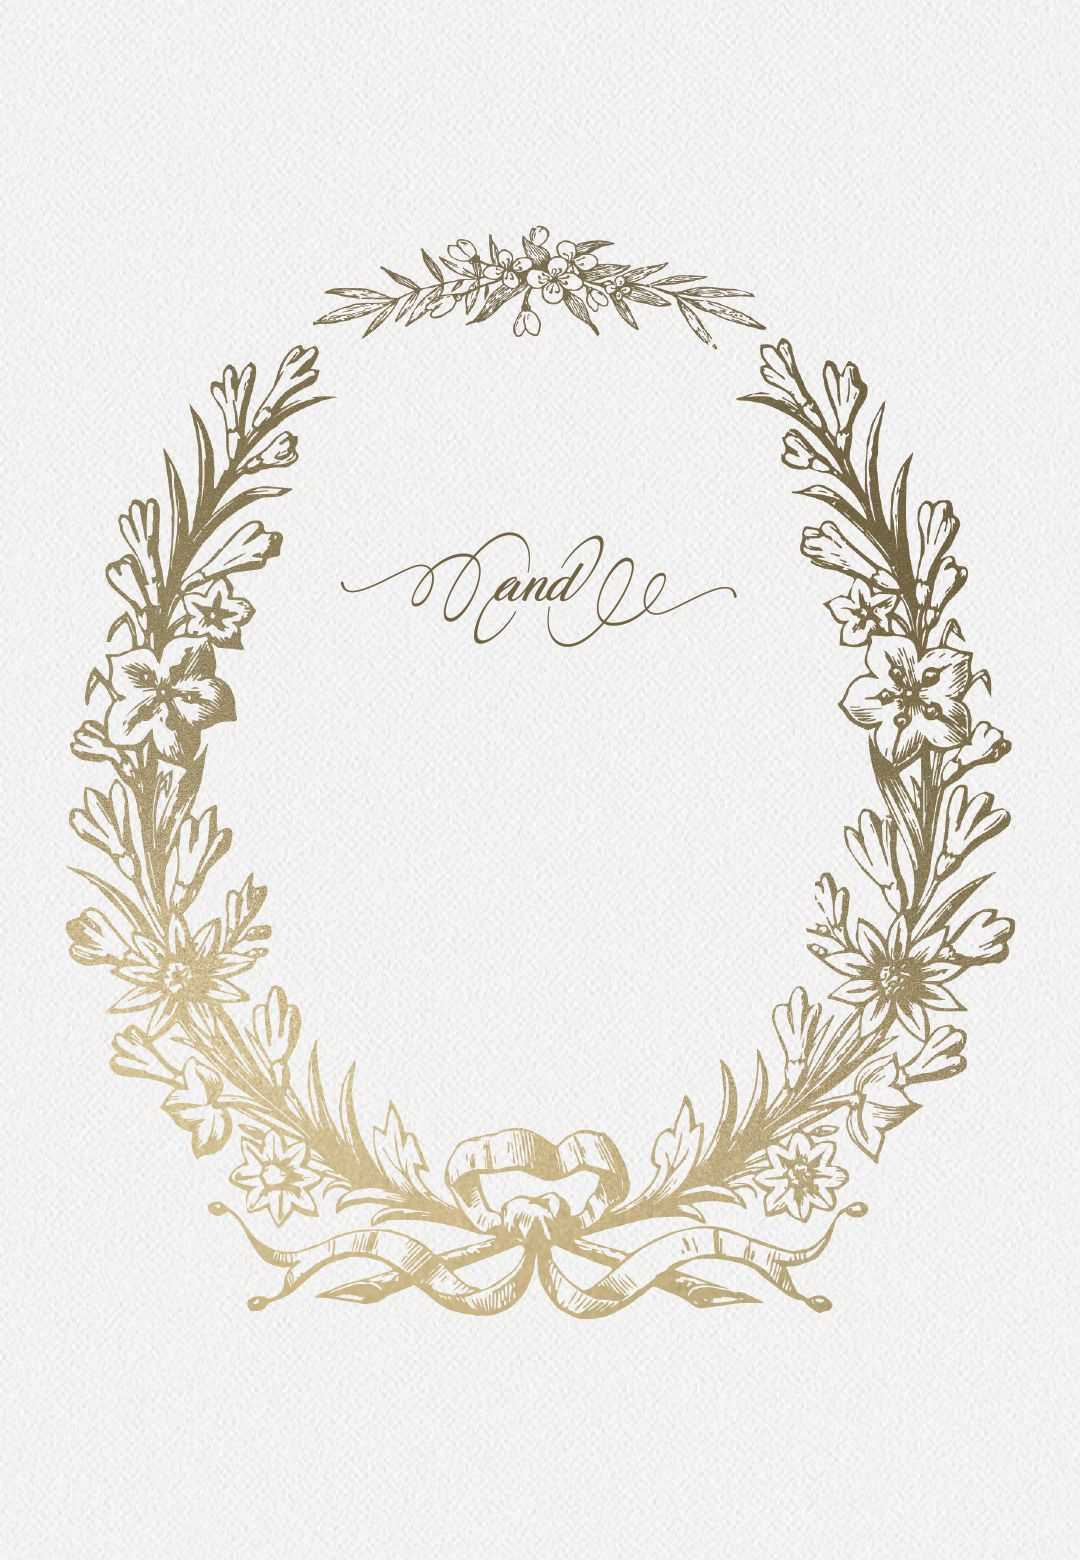 Golden Wreath - Rehearsal Dinner Party Invitation Template With Blank Templates For Invitations